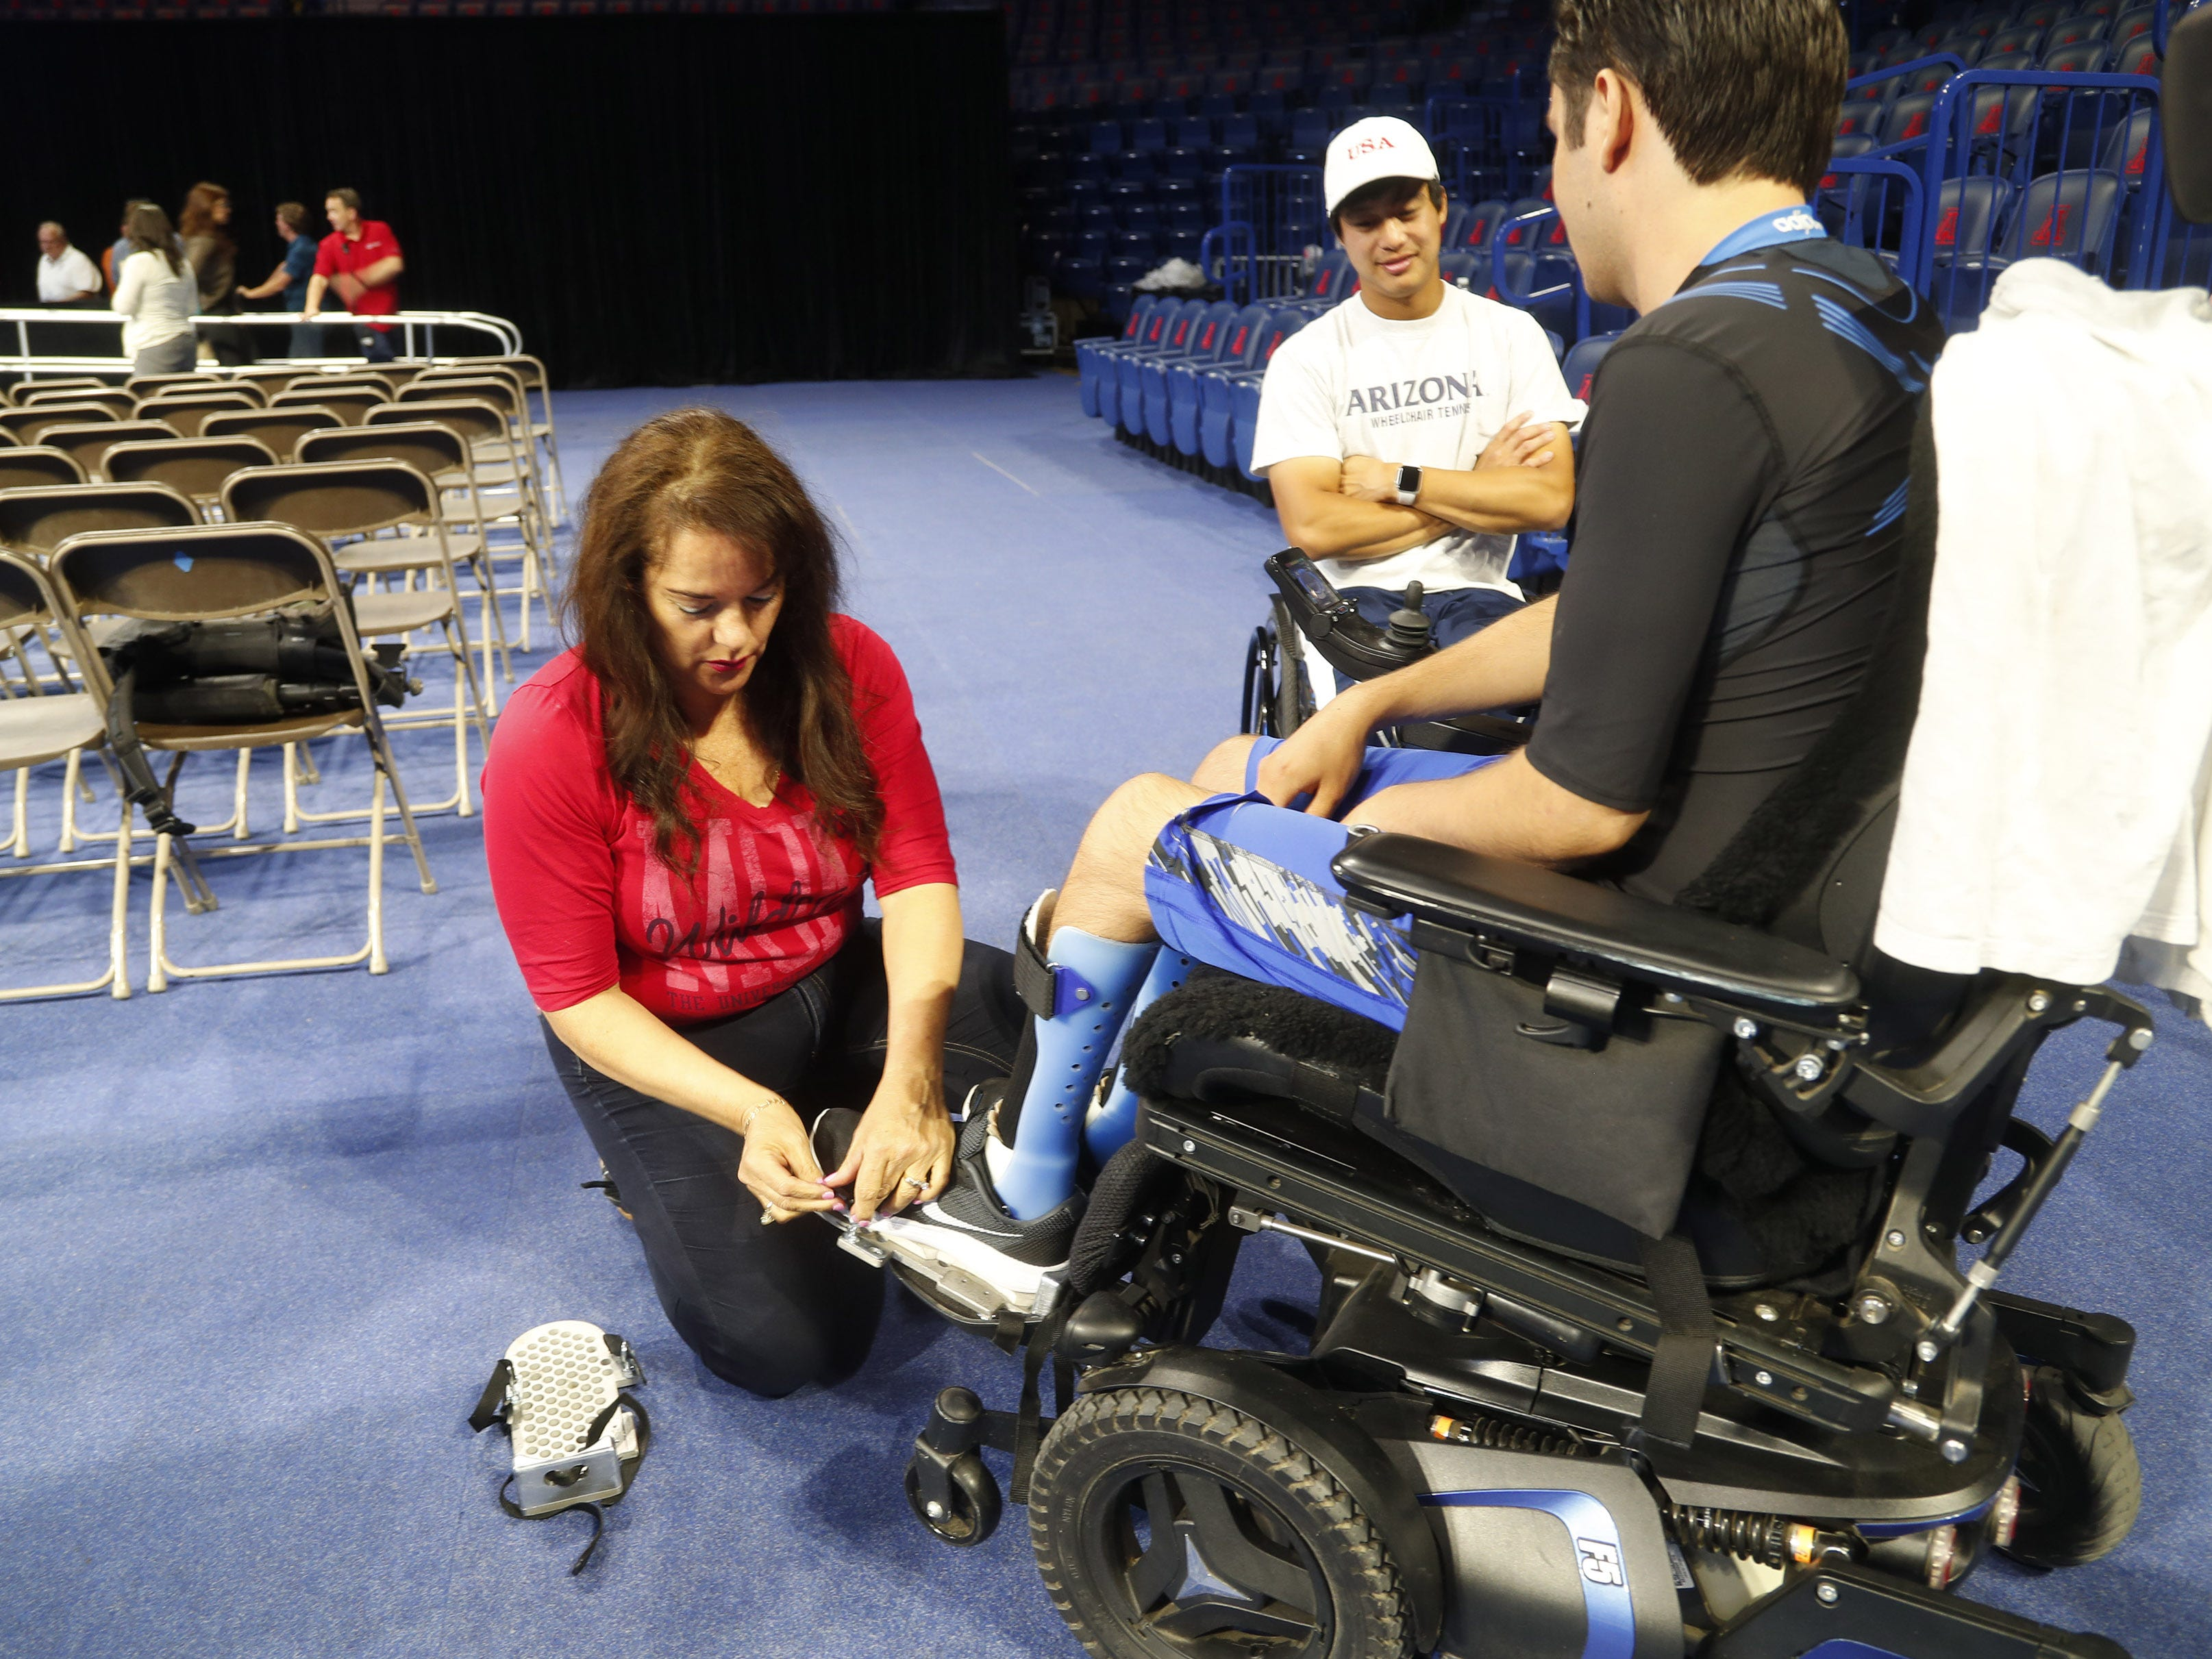 University of Arizona graduate Jeffrey Bristol has supports placed on his feet by his mom, Hermelinda, at McKale Center in Tucson, Ariz. on May 8, 2019. He has cerebral palsy and is a lifelong wheelchair user but has learned to walk with the help from engineering students who helped construct an exoskeleton.